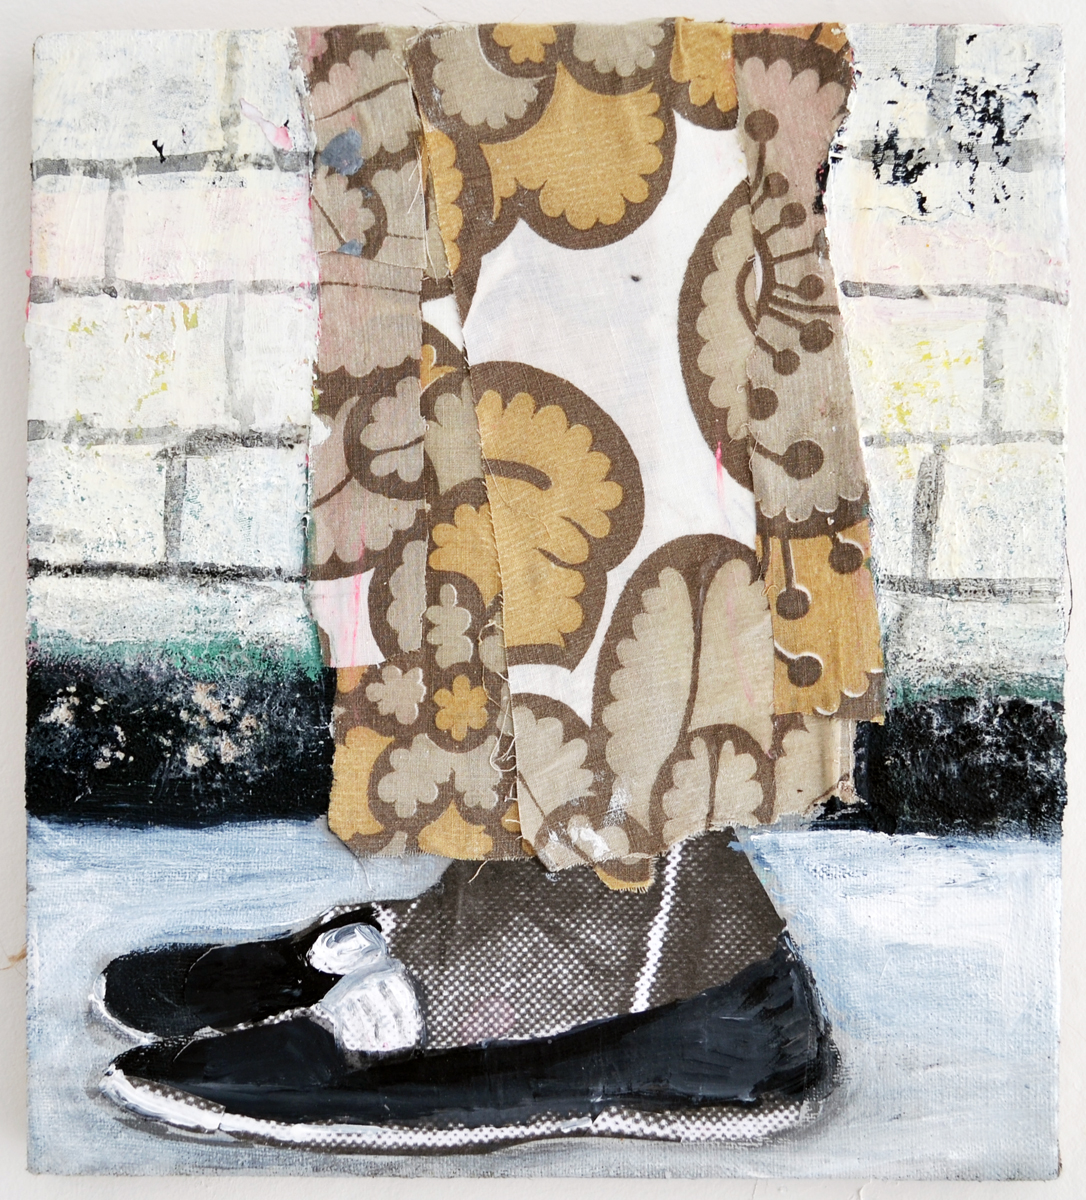 Mette Vangsgaard | Legs and Shoes and Textures, 2015. Mixed media collage, 30x27 cm